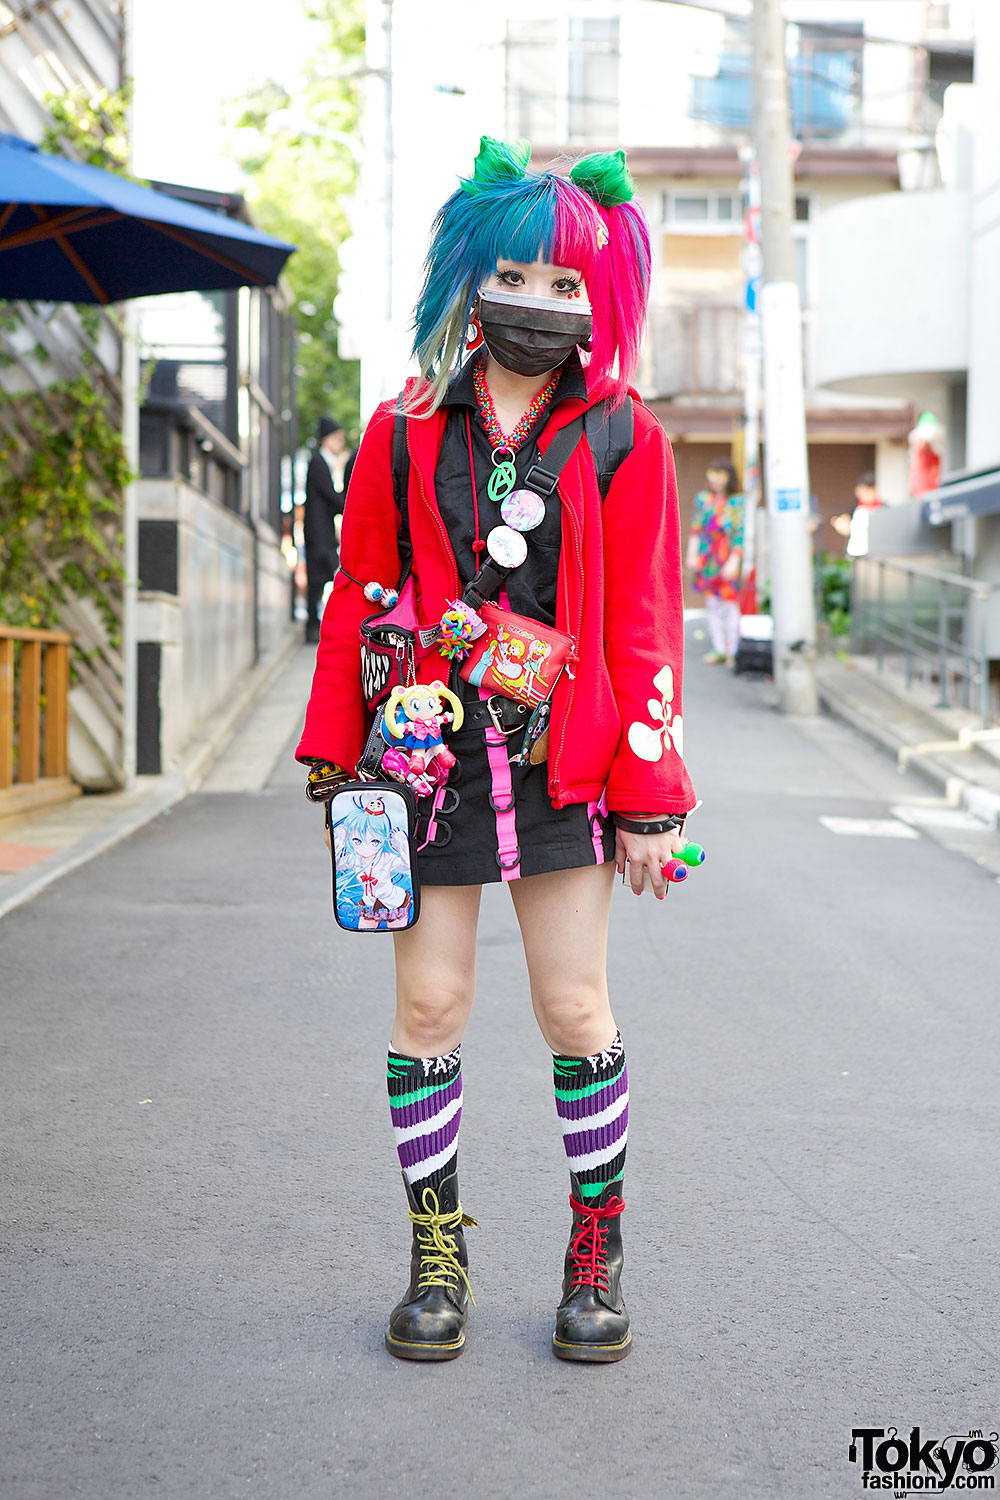 Rainbow Hair W Space Tribe Mini Dr Martens Anime Accessories In Harajuku